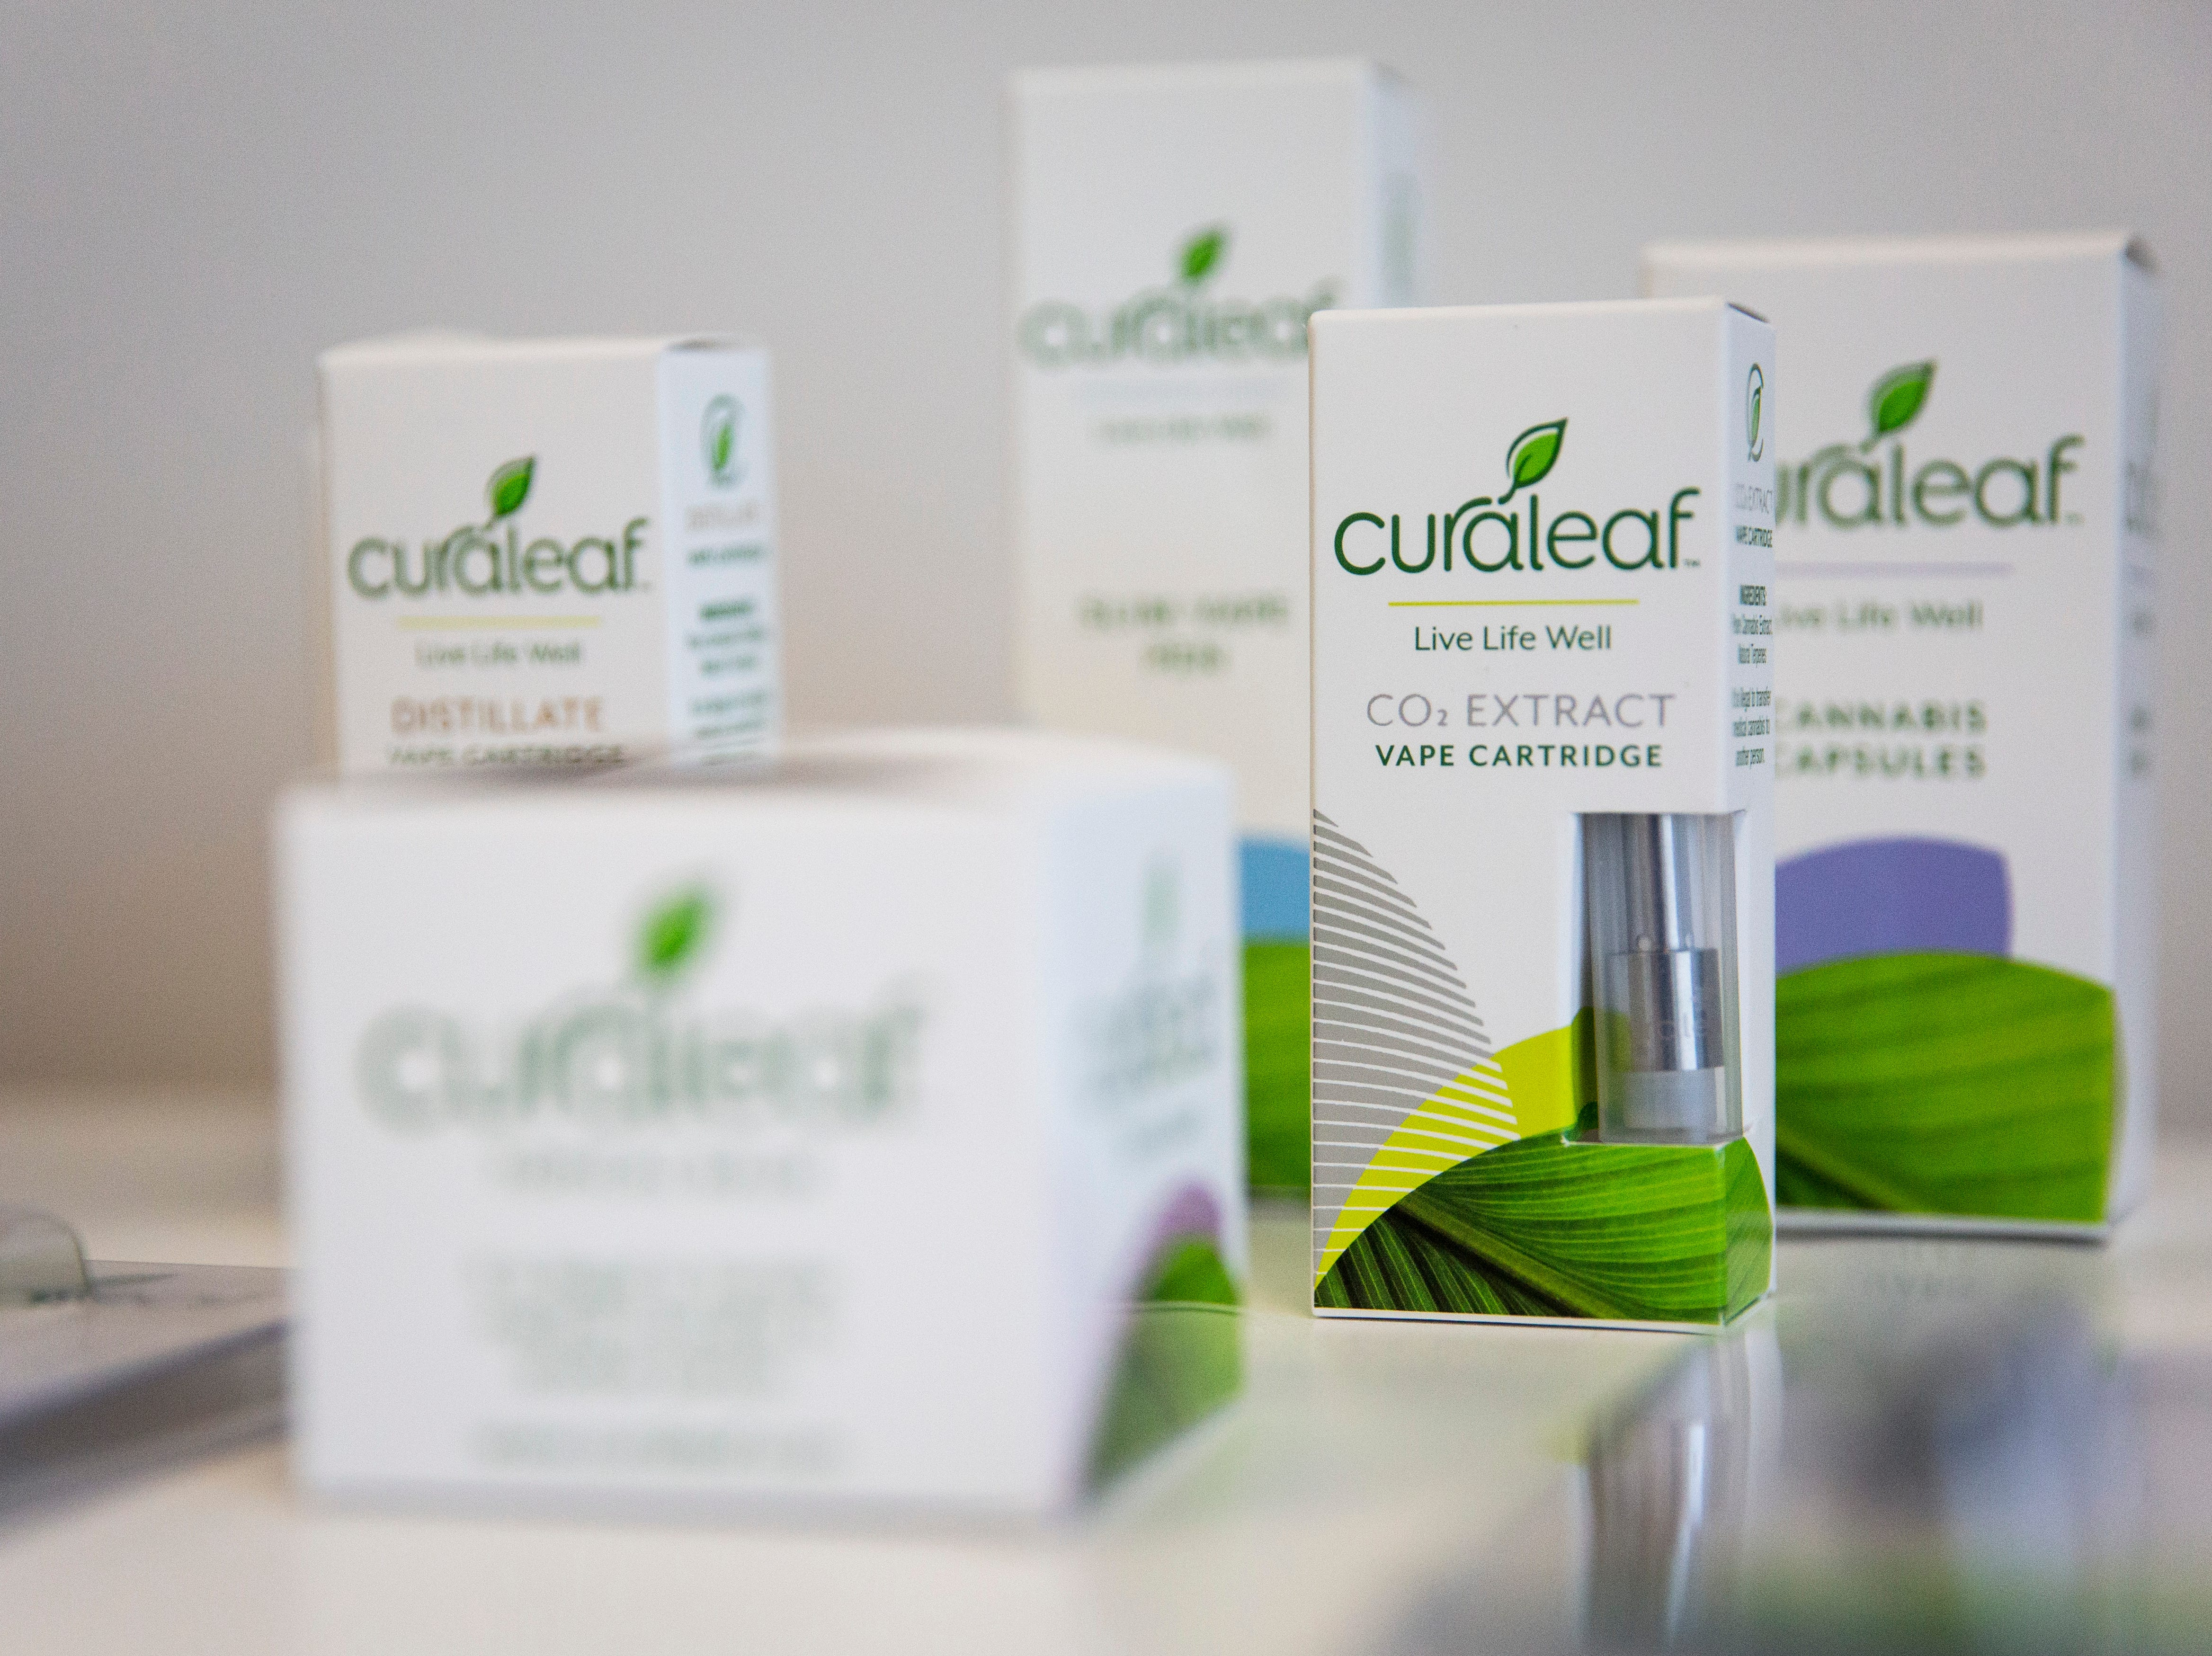 Curaleaf products, including vape pens and cannabis capsules, are available for purchase during the grand opening of the Curaleaf medical marijuana dispensary in Bonita Springs on Thursday, January 17, 2019.